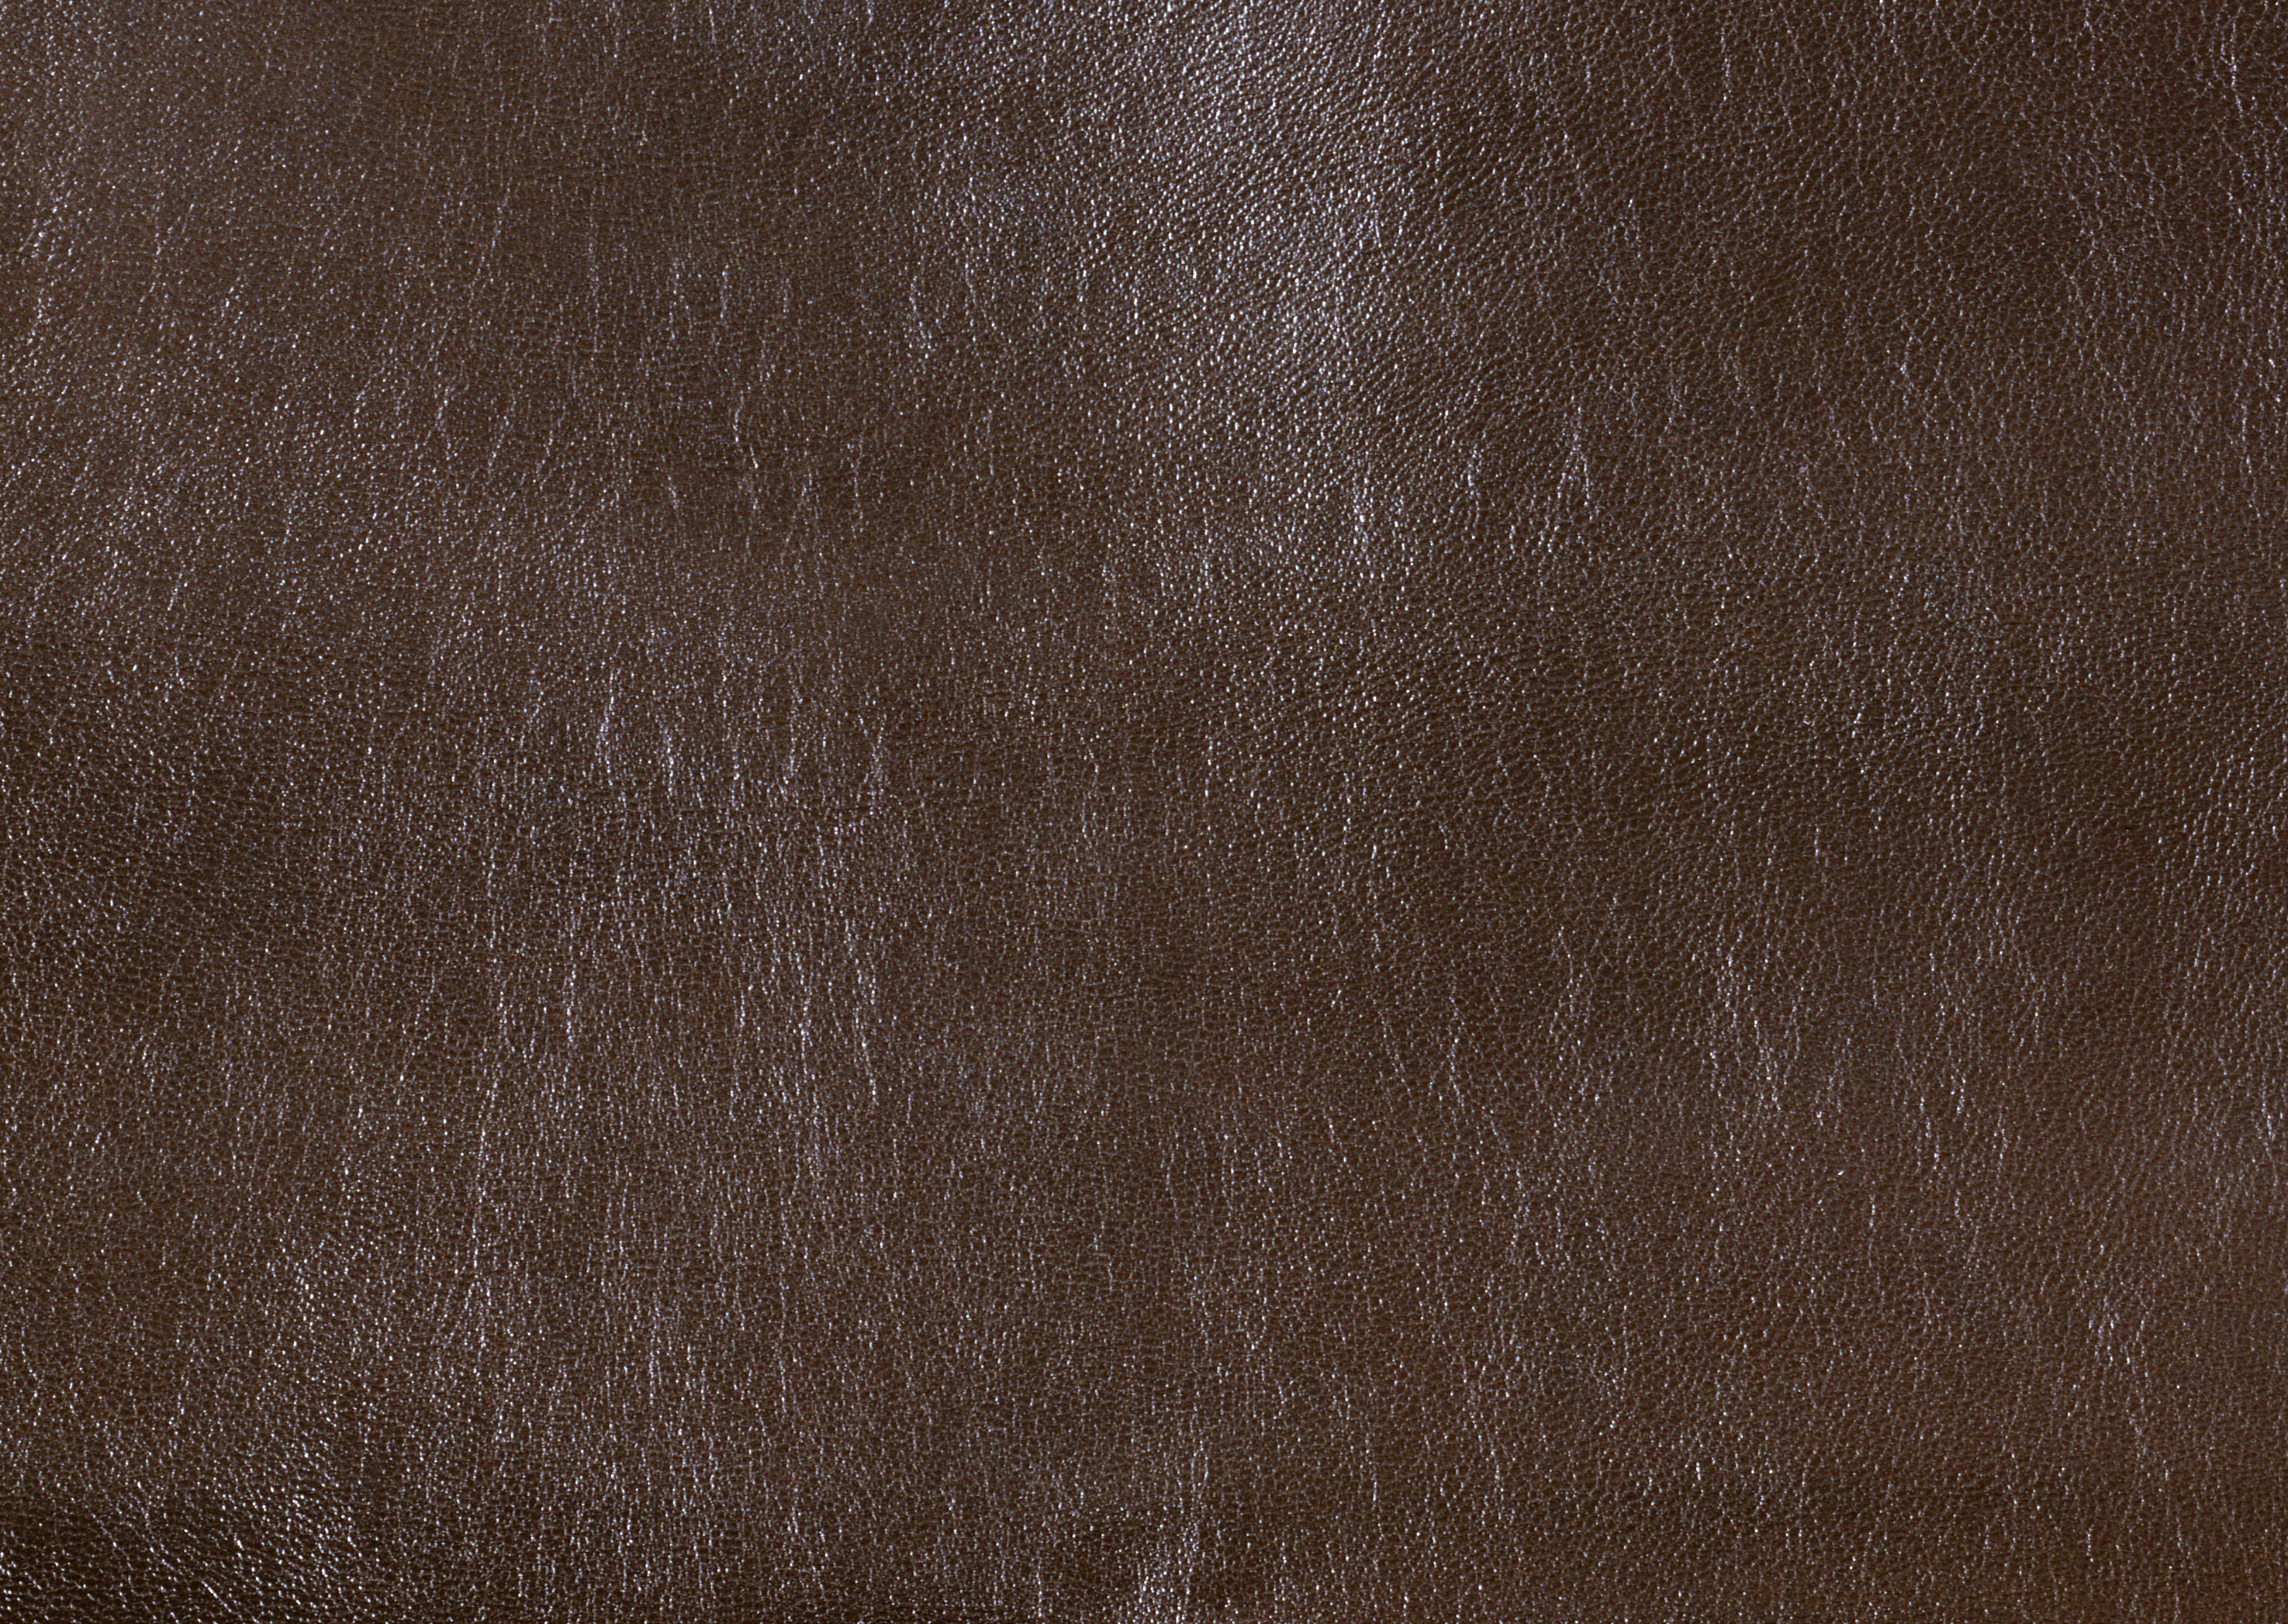 Brown leather texture background image free download for Silverleaf com